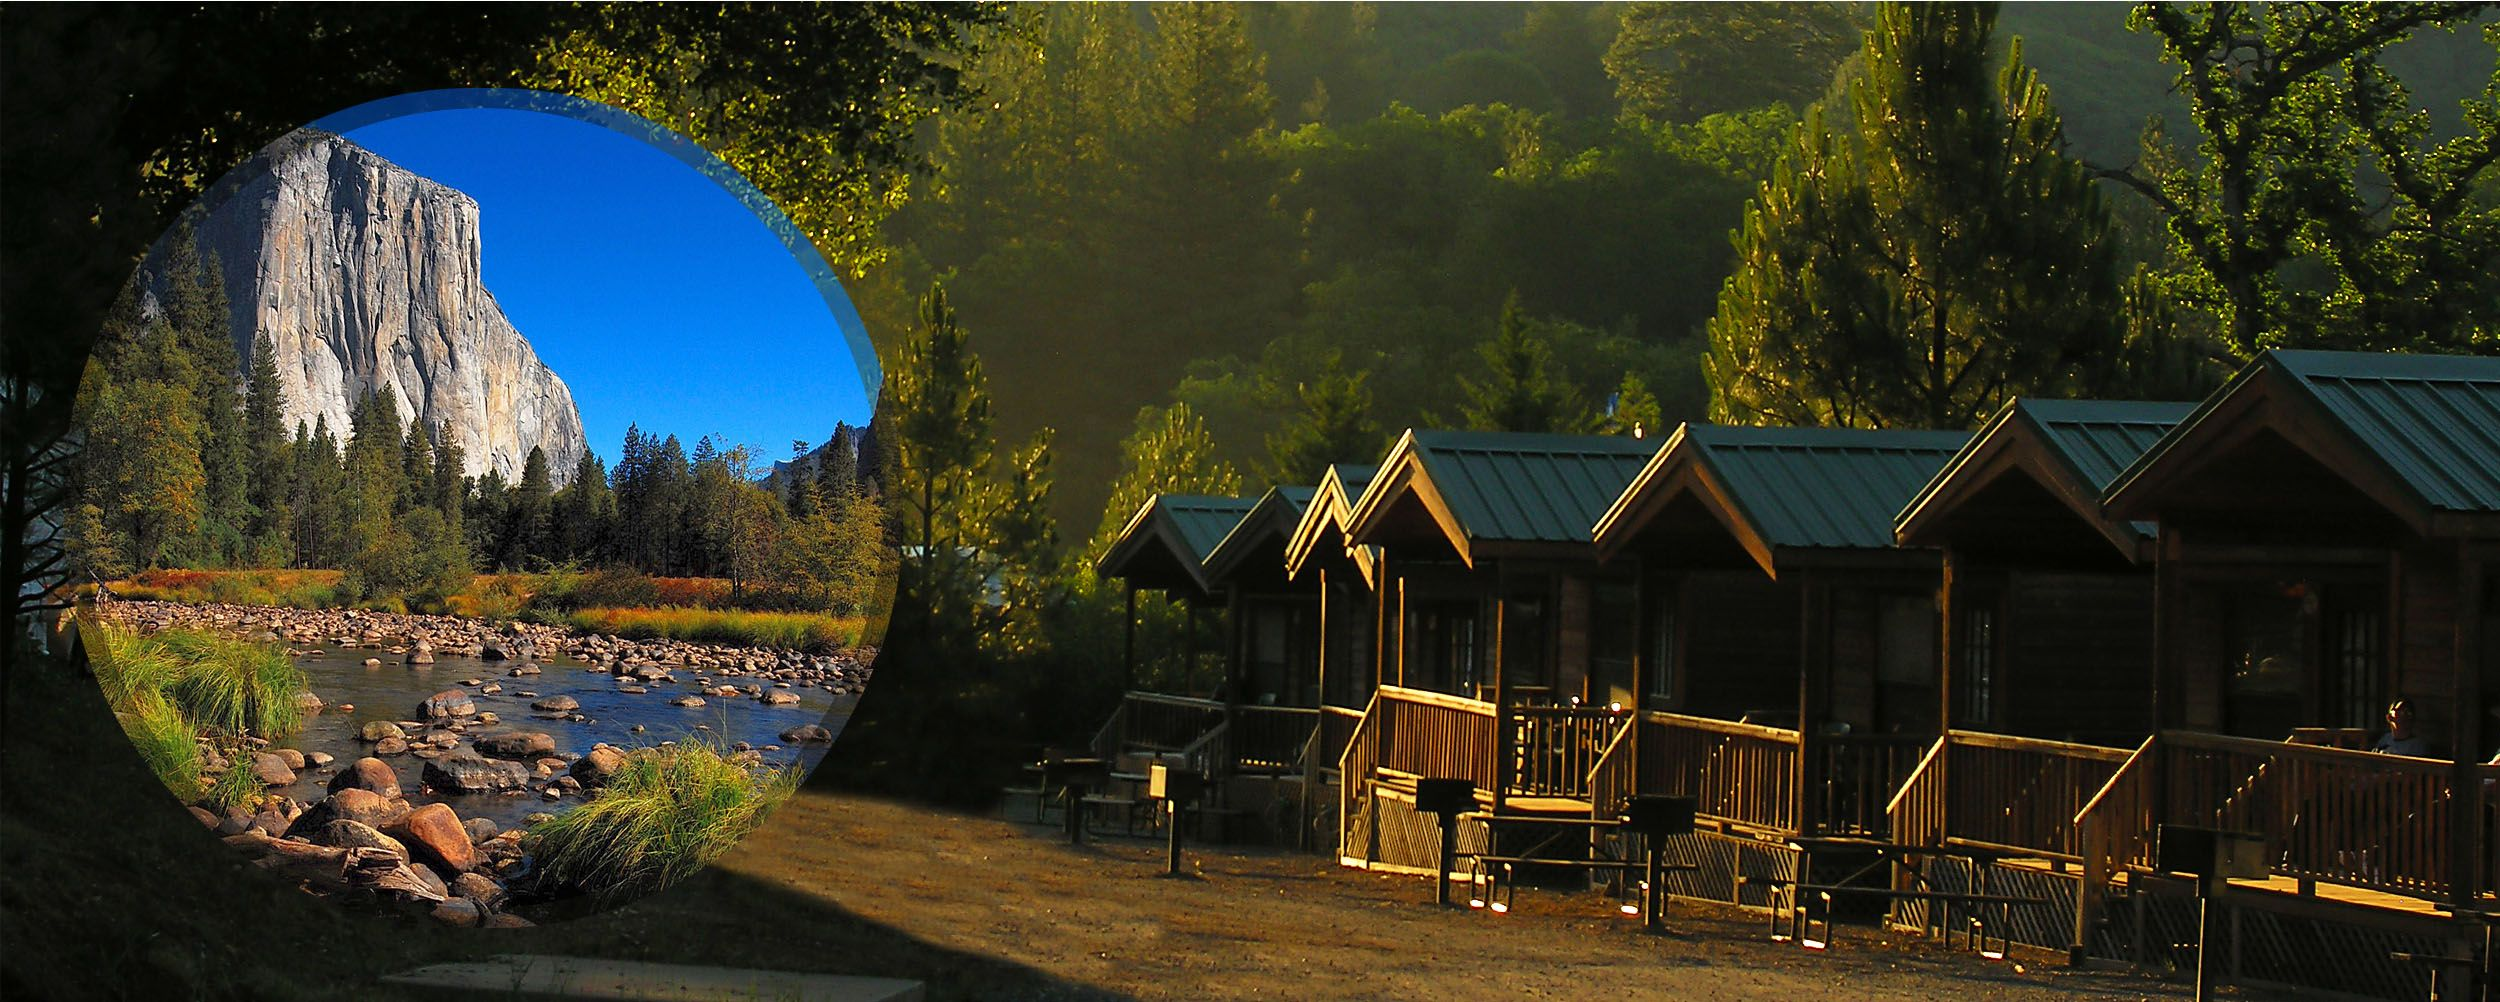 flickr dome cabins half b village in carnesaurus tent national cabin park photos yosemite by